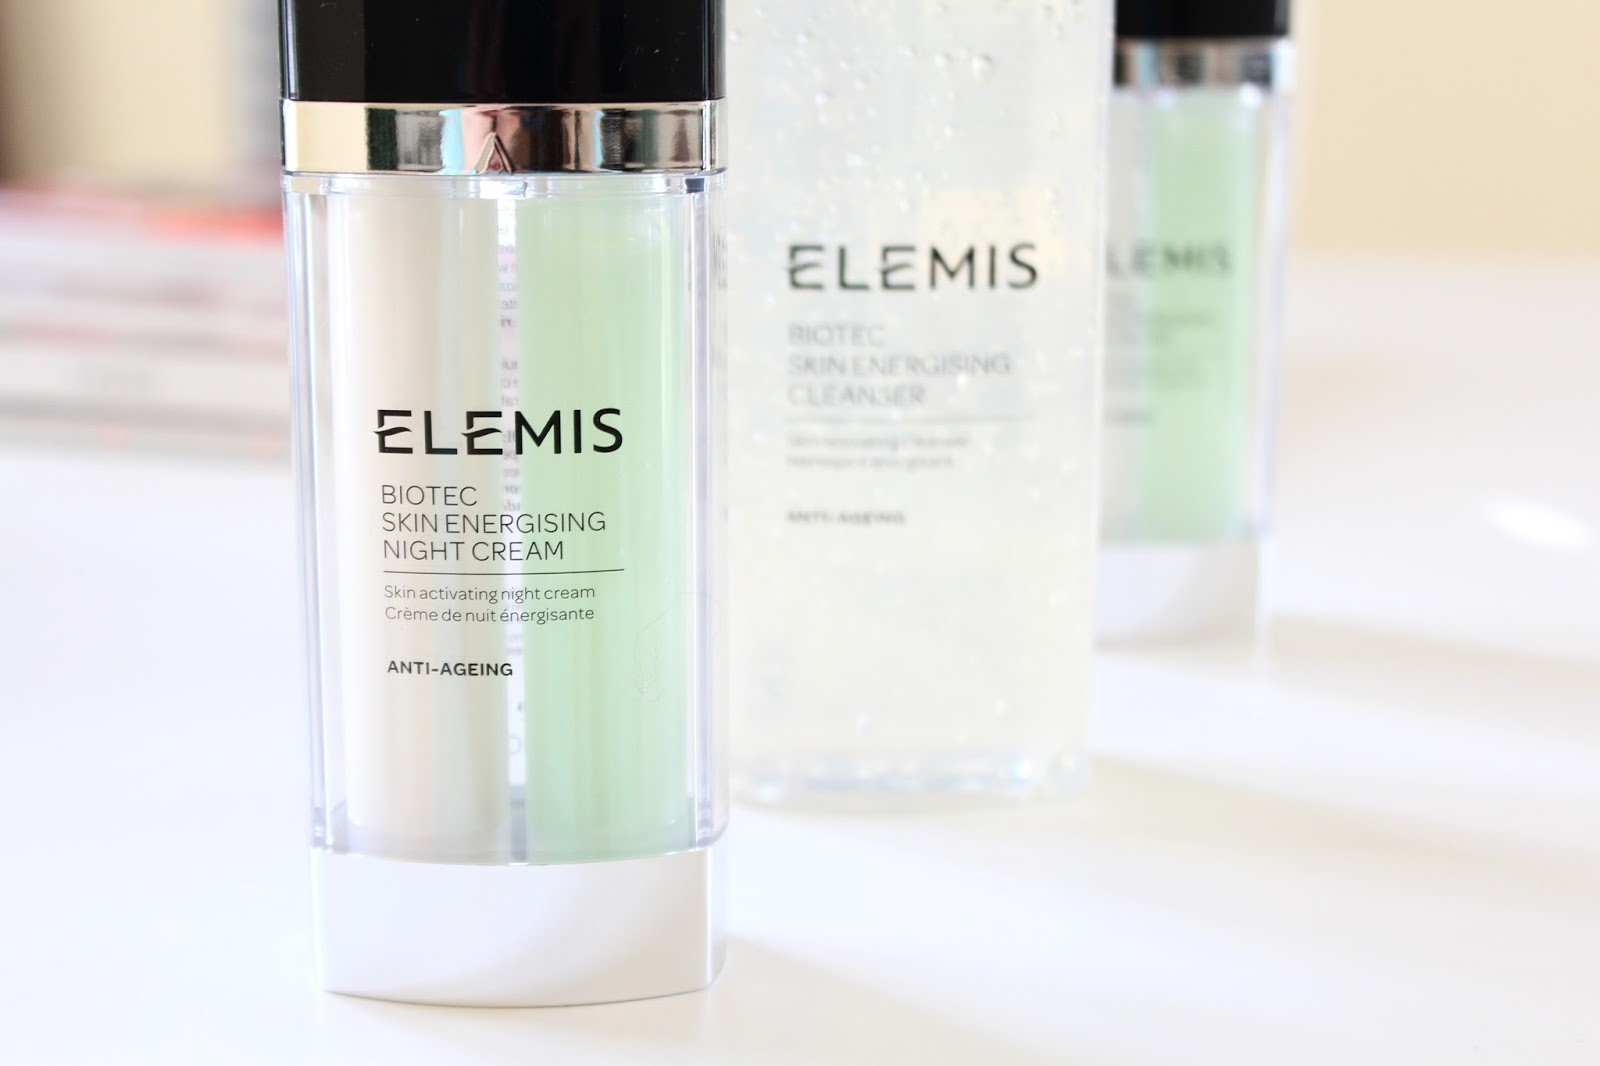 Elemis Skin Energising Biotec Night Cream